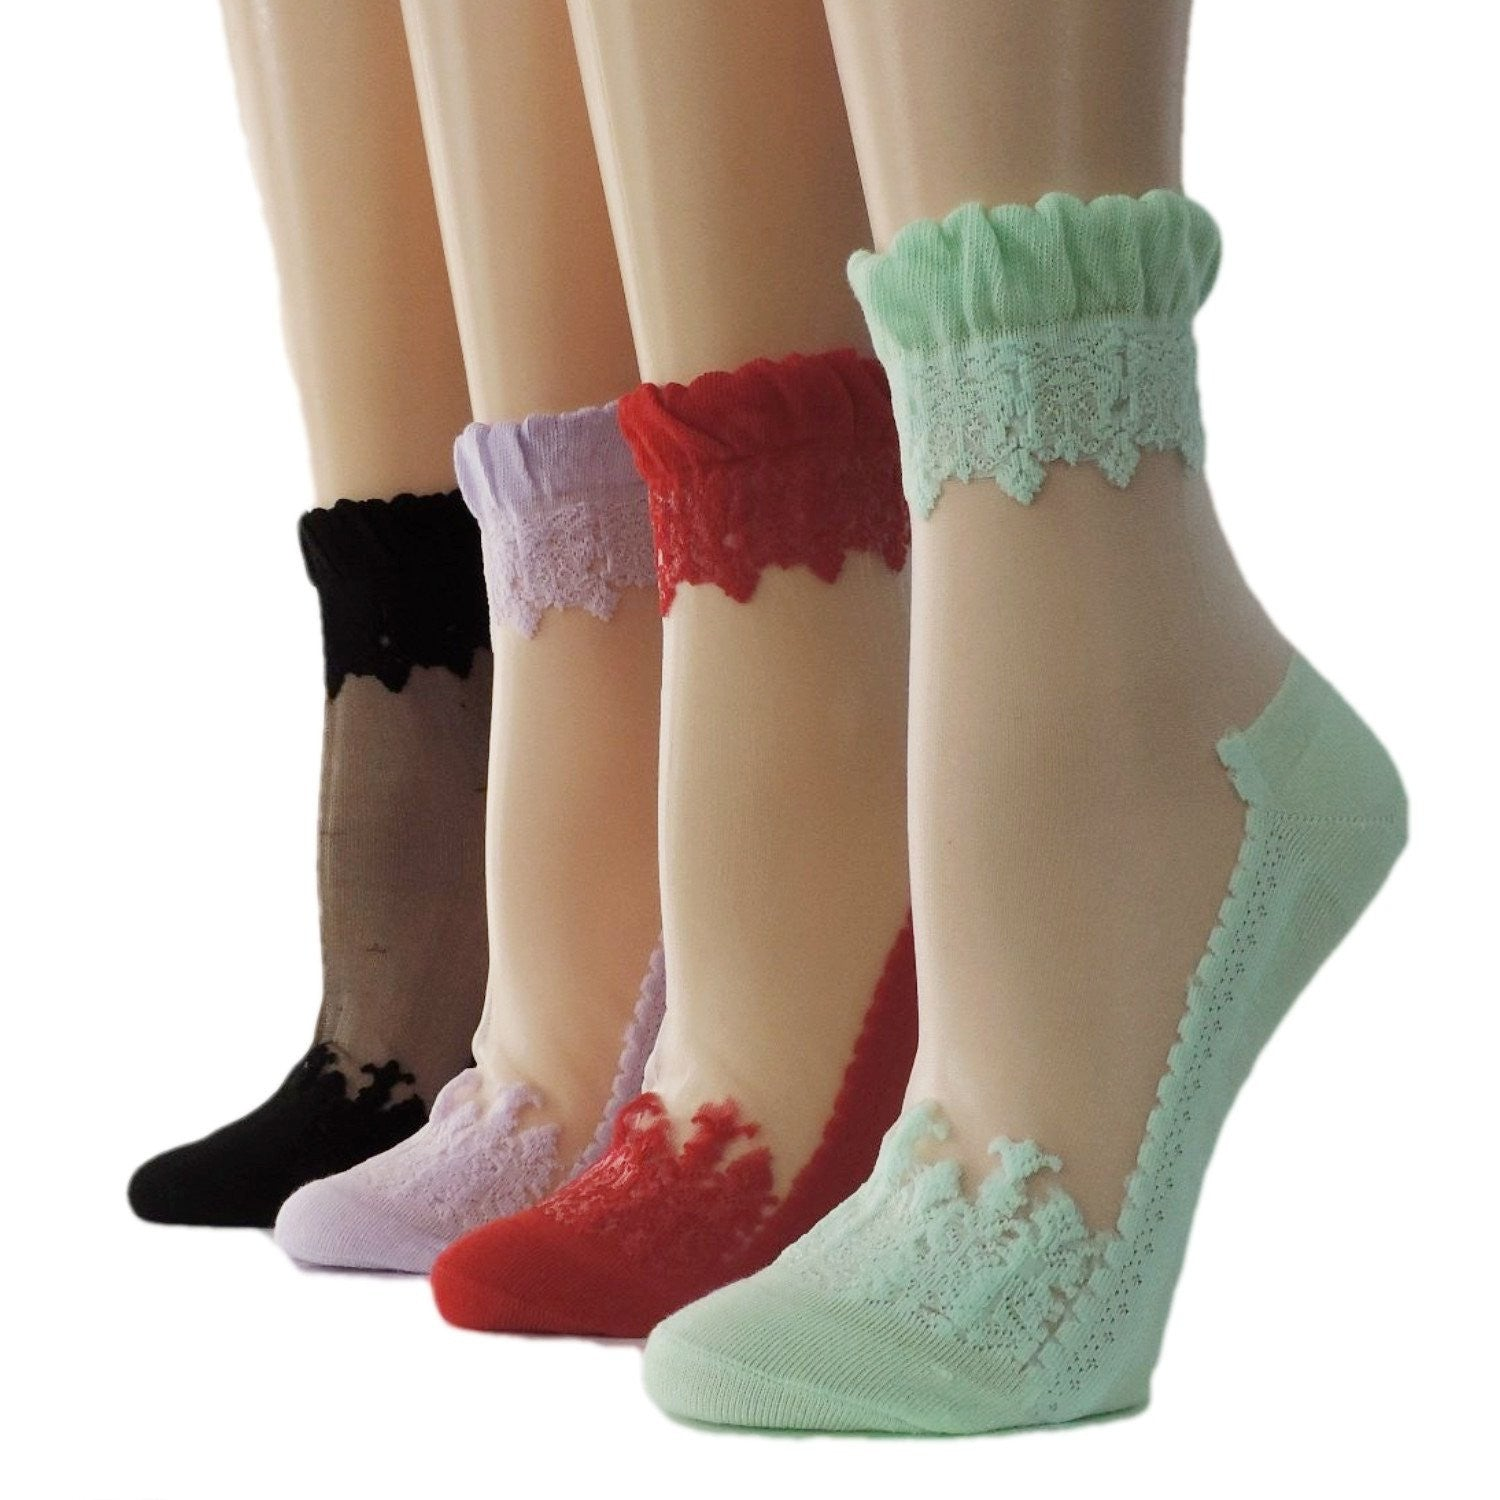 Stunning Patterned Sheer Socks (Pack of 4 Pairs)-Global Trendz  Fashion®